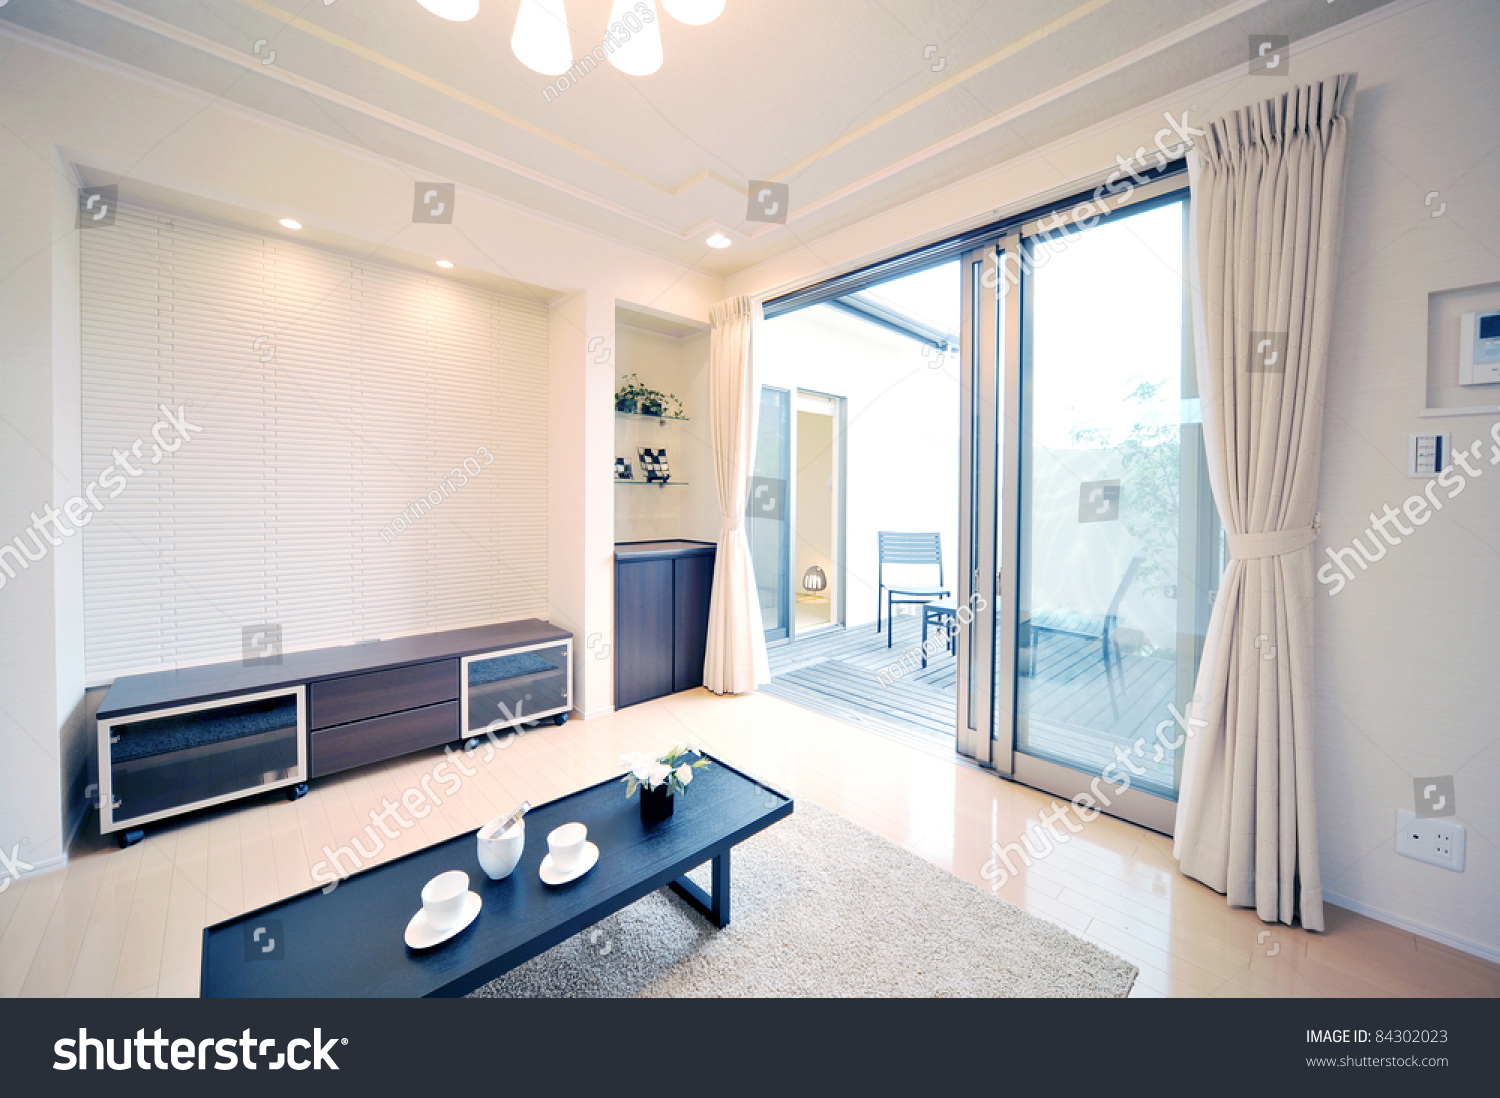 japanese style living room. INTERIOR IMAGE  Japanese style living room with tatami mat 2 Interior Image Style Living Room Stock Photo 84302023